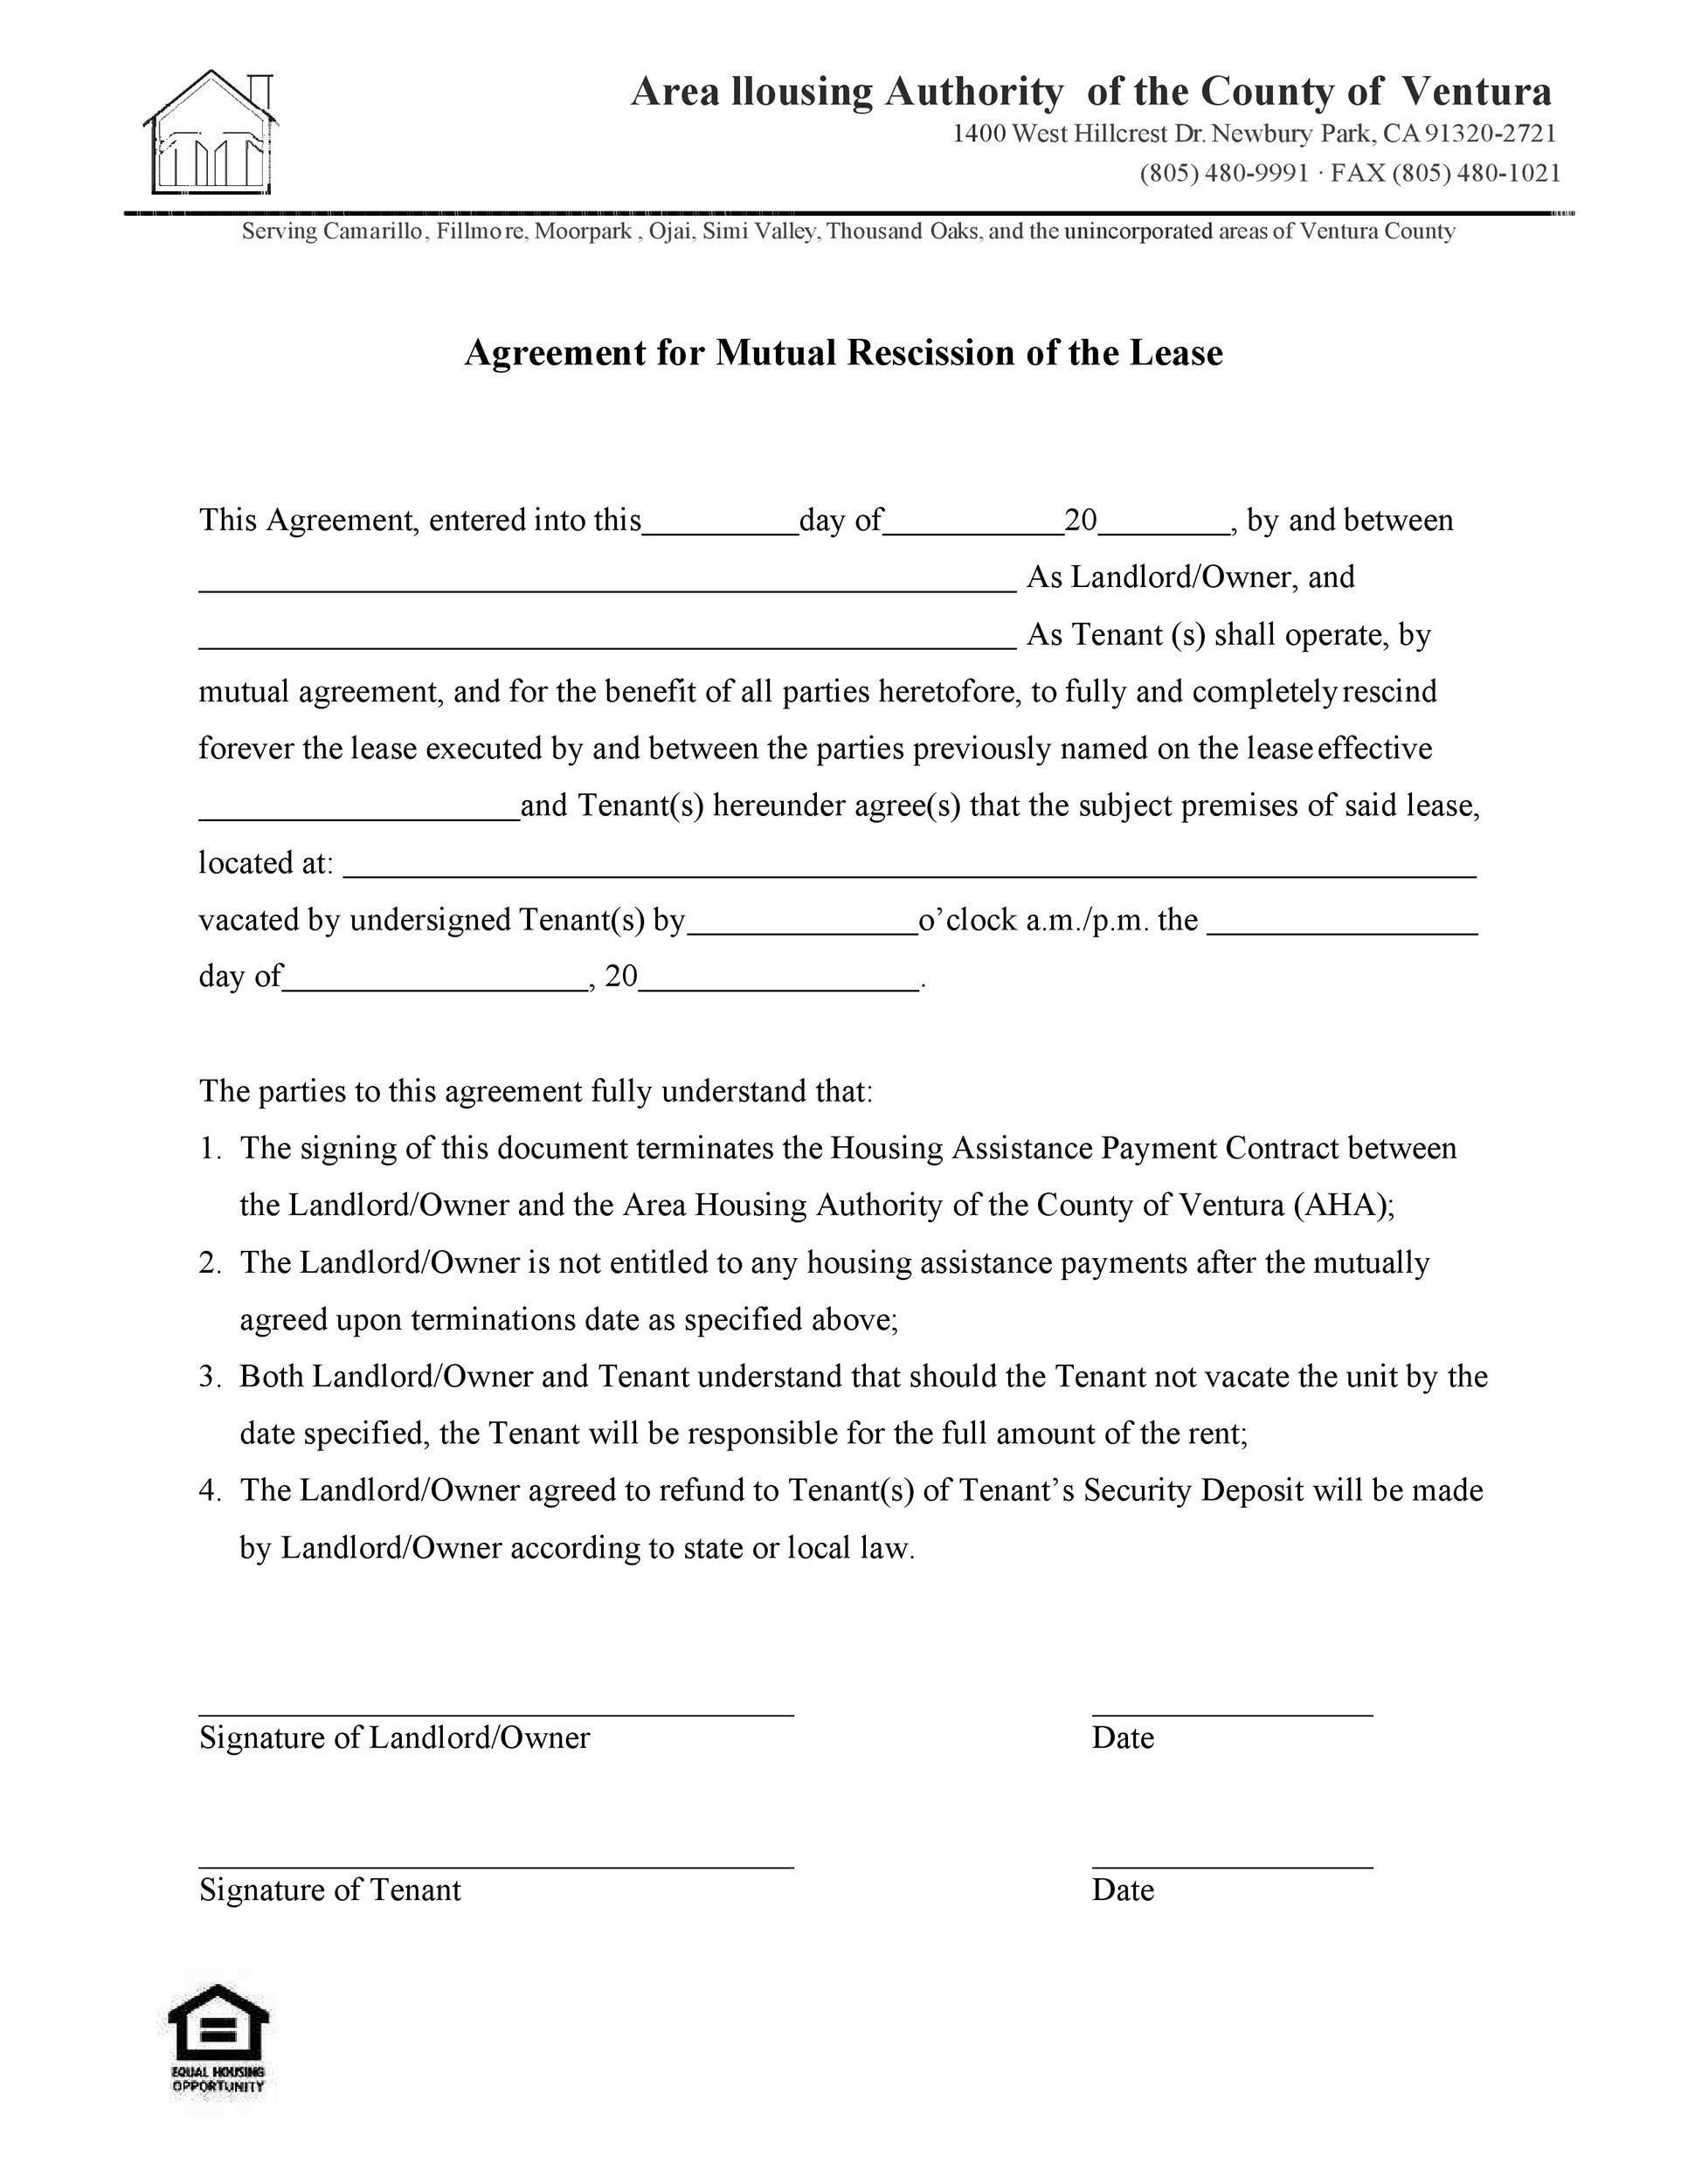 Free rescission agreement 14